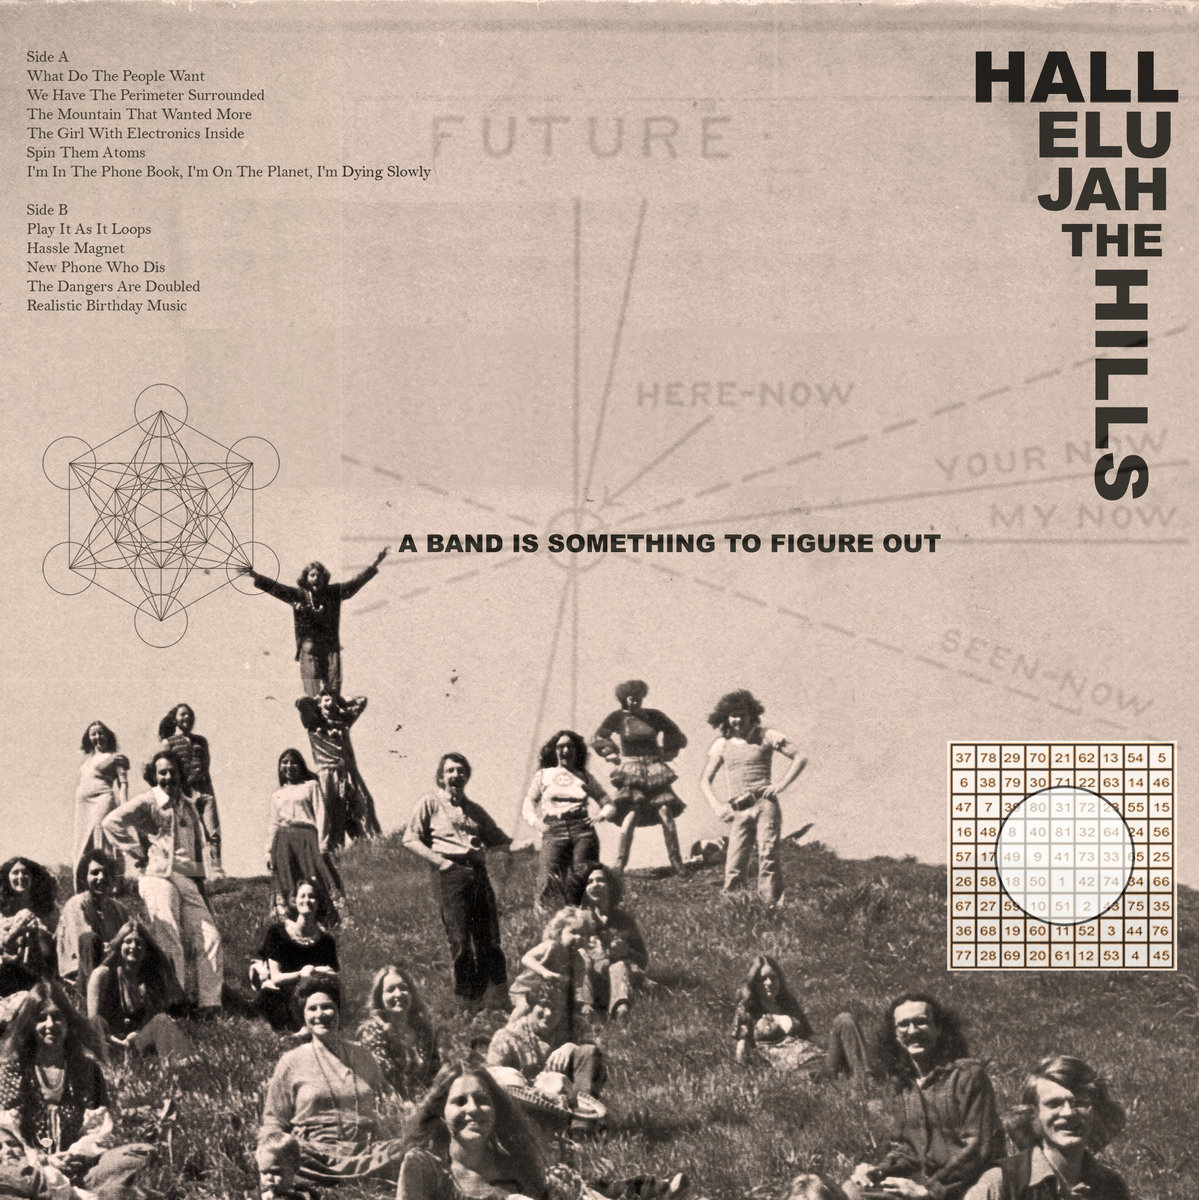 Hallelujah-The-Hills-A-Band-is-Something-to-Figure-Out